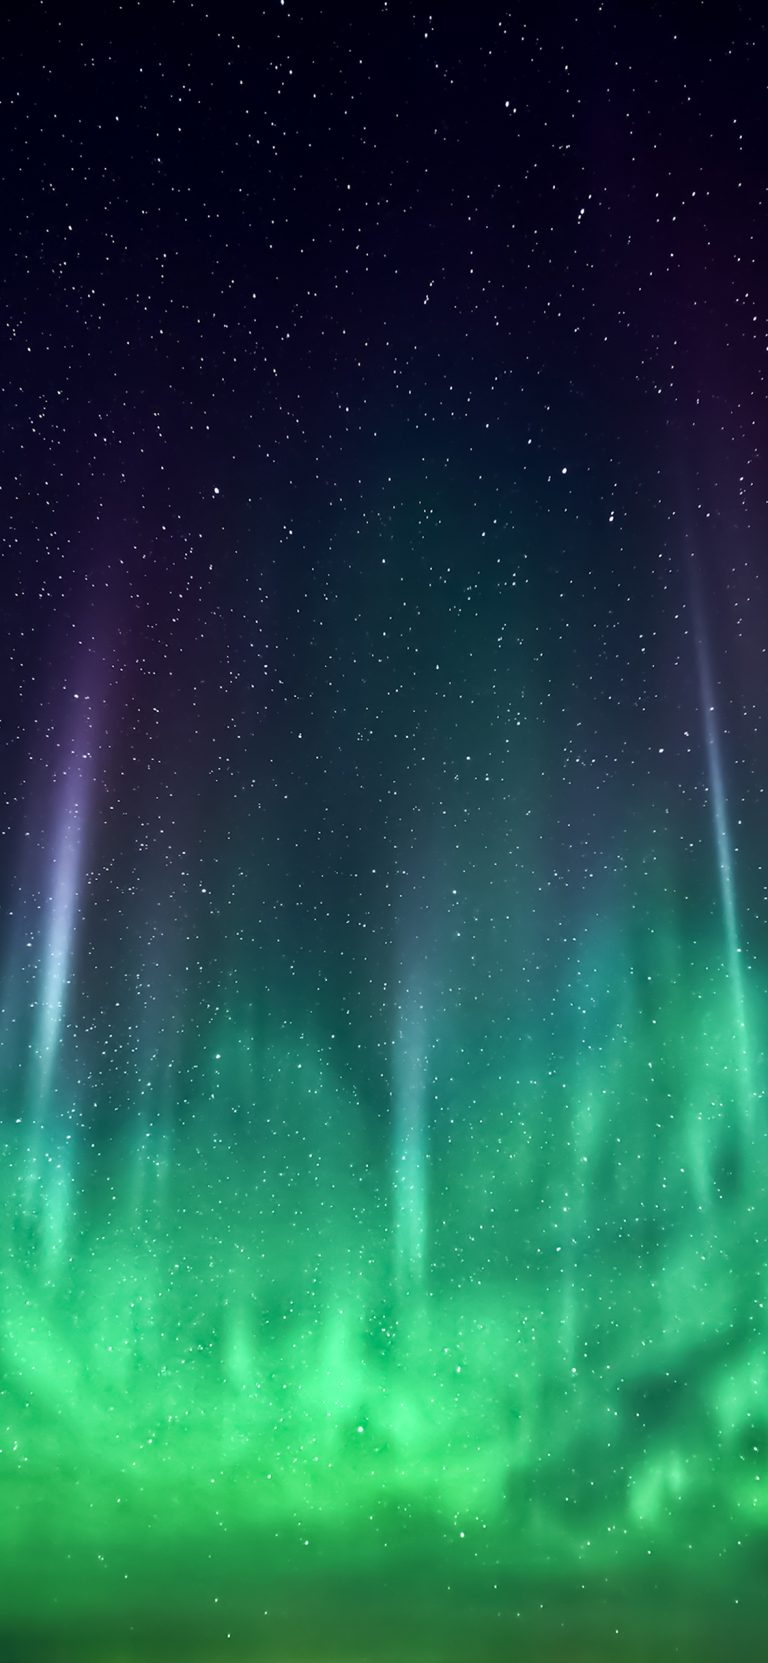 Apple iOS iphone x background wallpapers